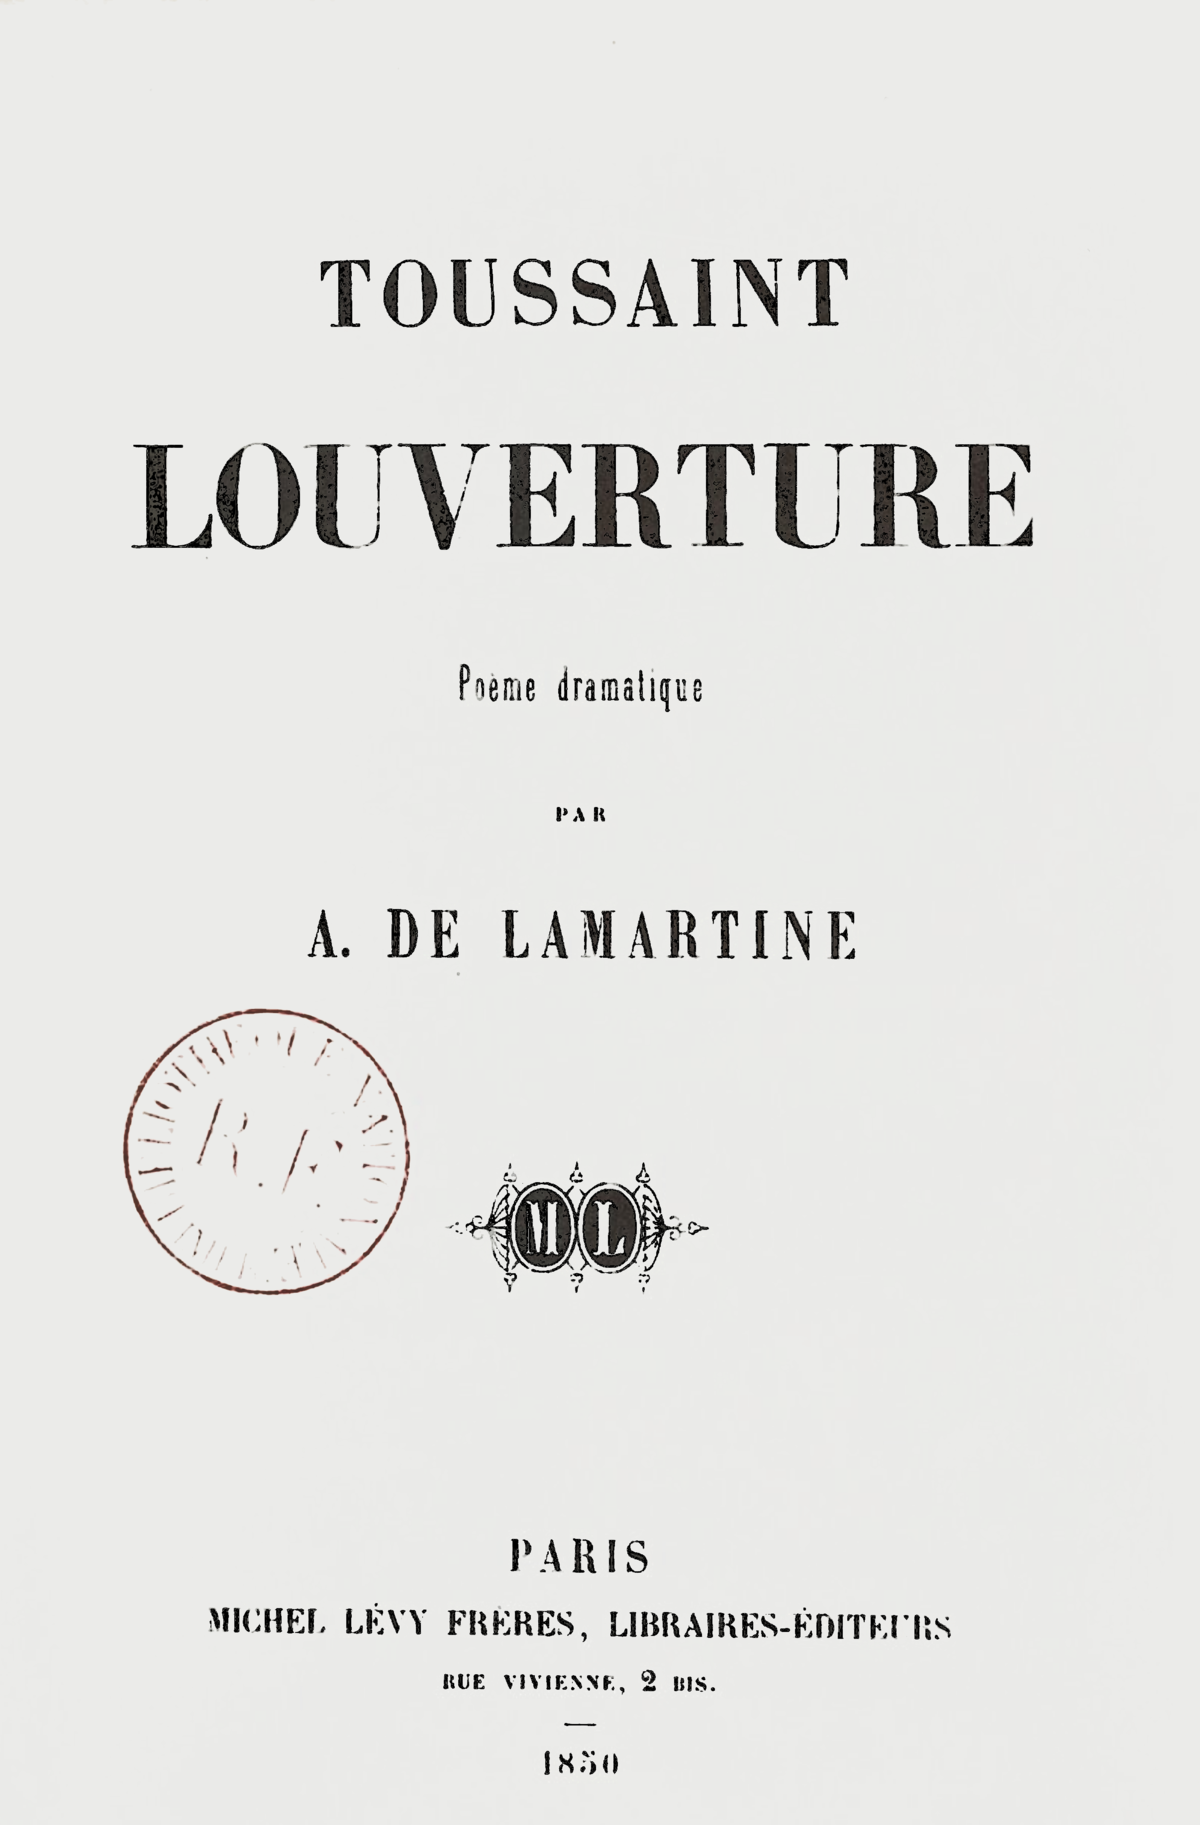 Filelamartine Toussaint Louverture Poème Dramatique